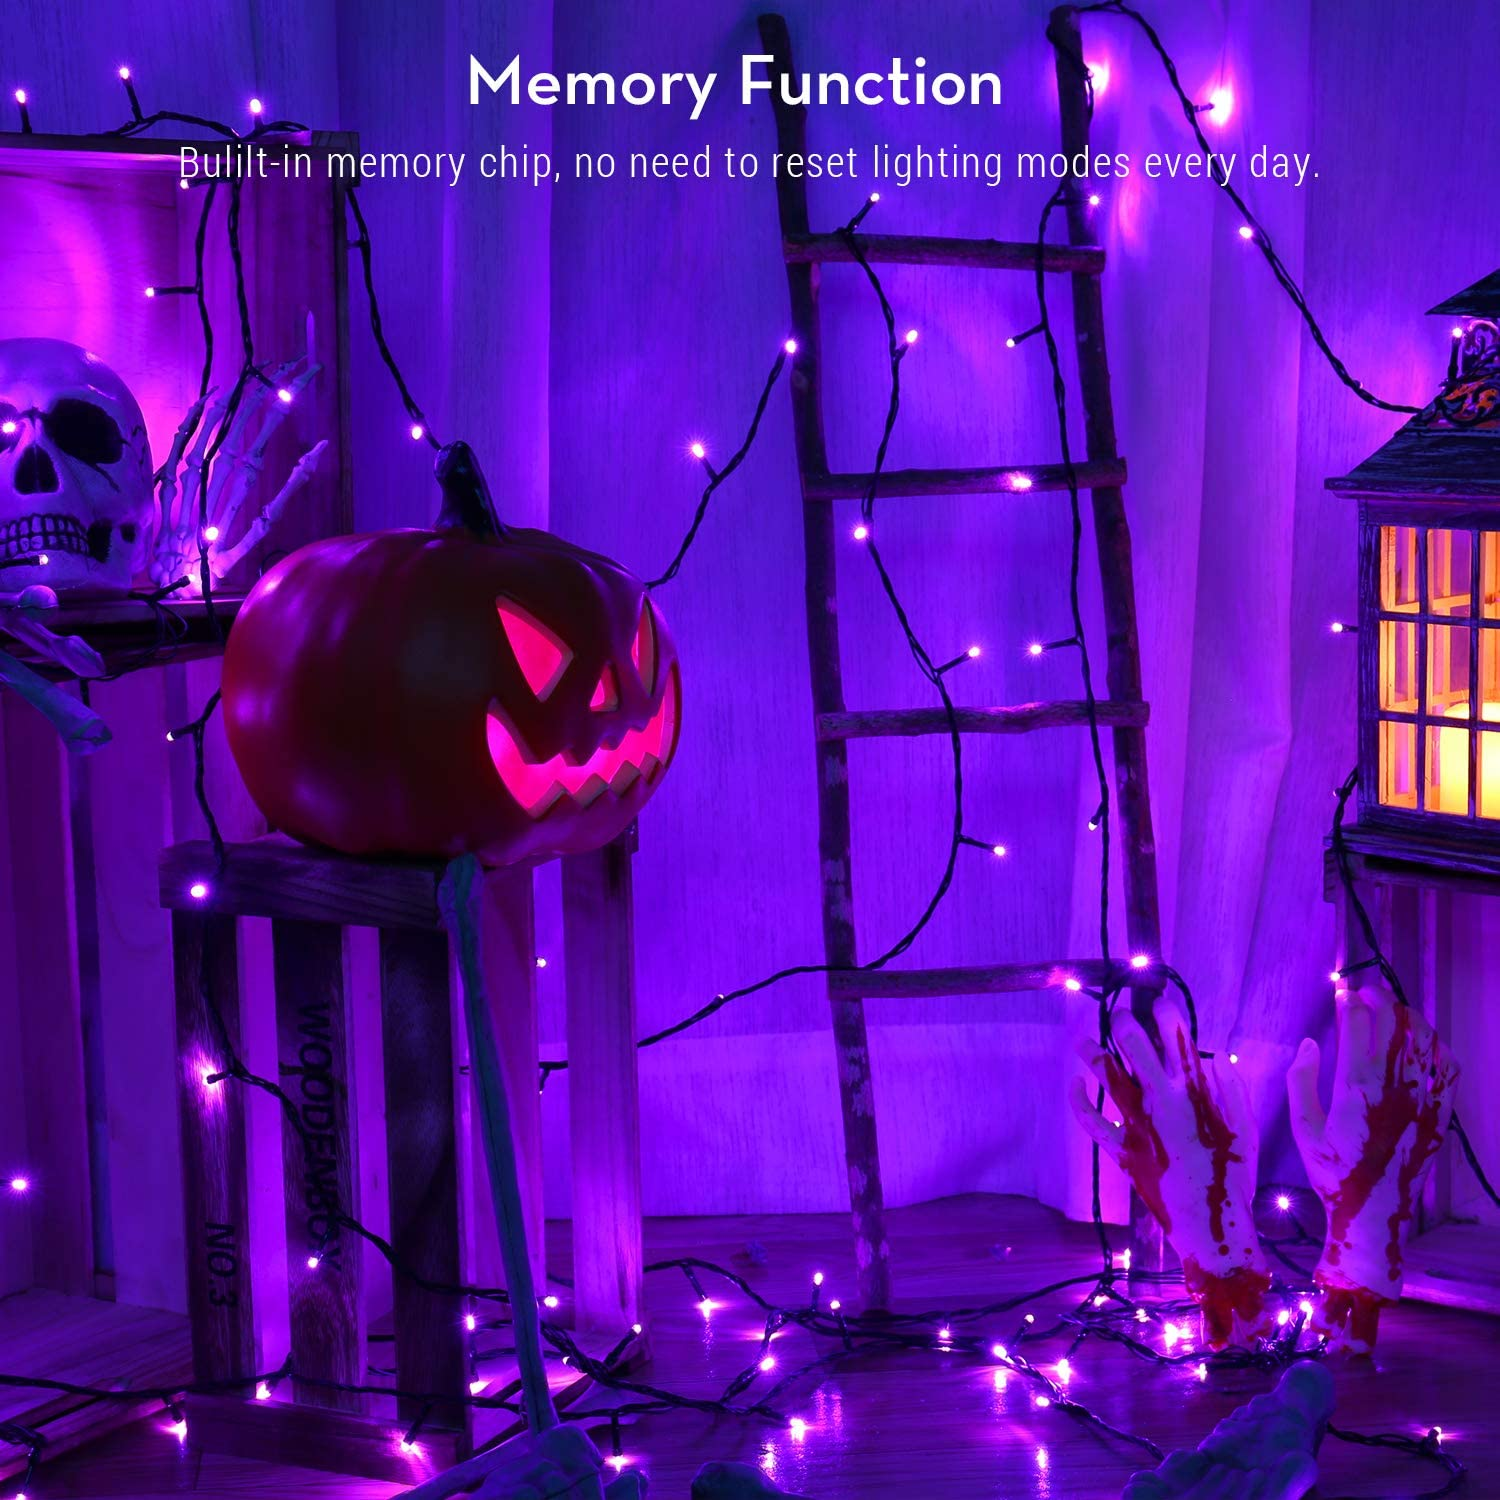 BrizLabs Purple Lights, 78.74ft 240 LED Halloween Lights, Plug in Halloween Lights String Connectable, 8 Modes Outdoor Halloween String Lights Waterproof for Indoor Outside Window Spooky Decoration: Home & Kitchen